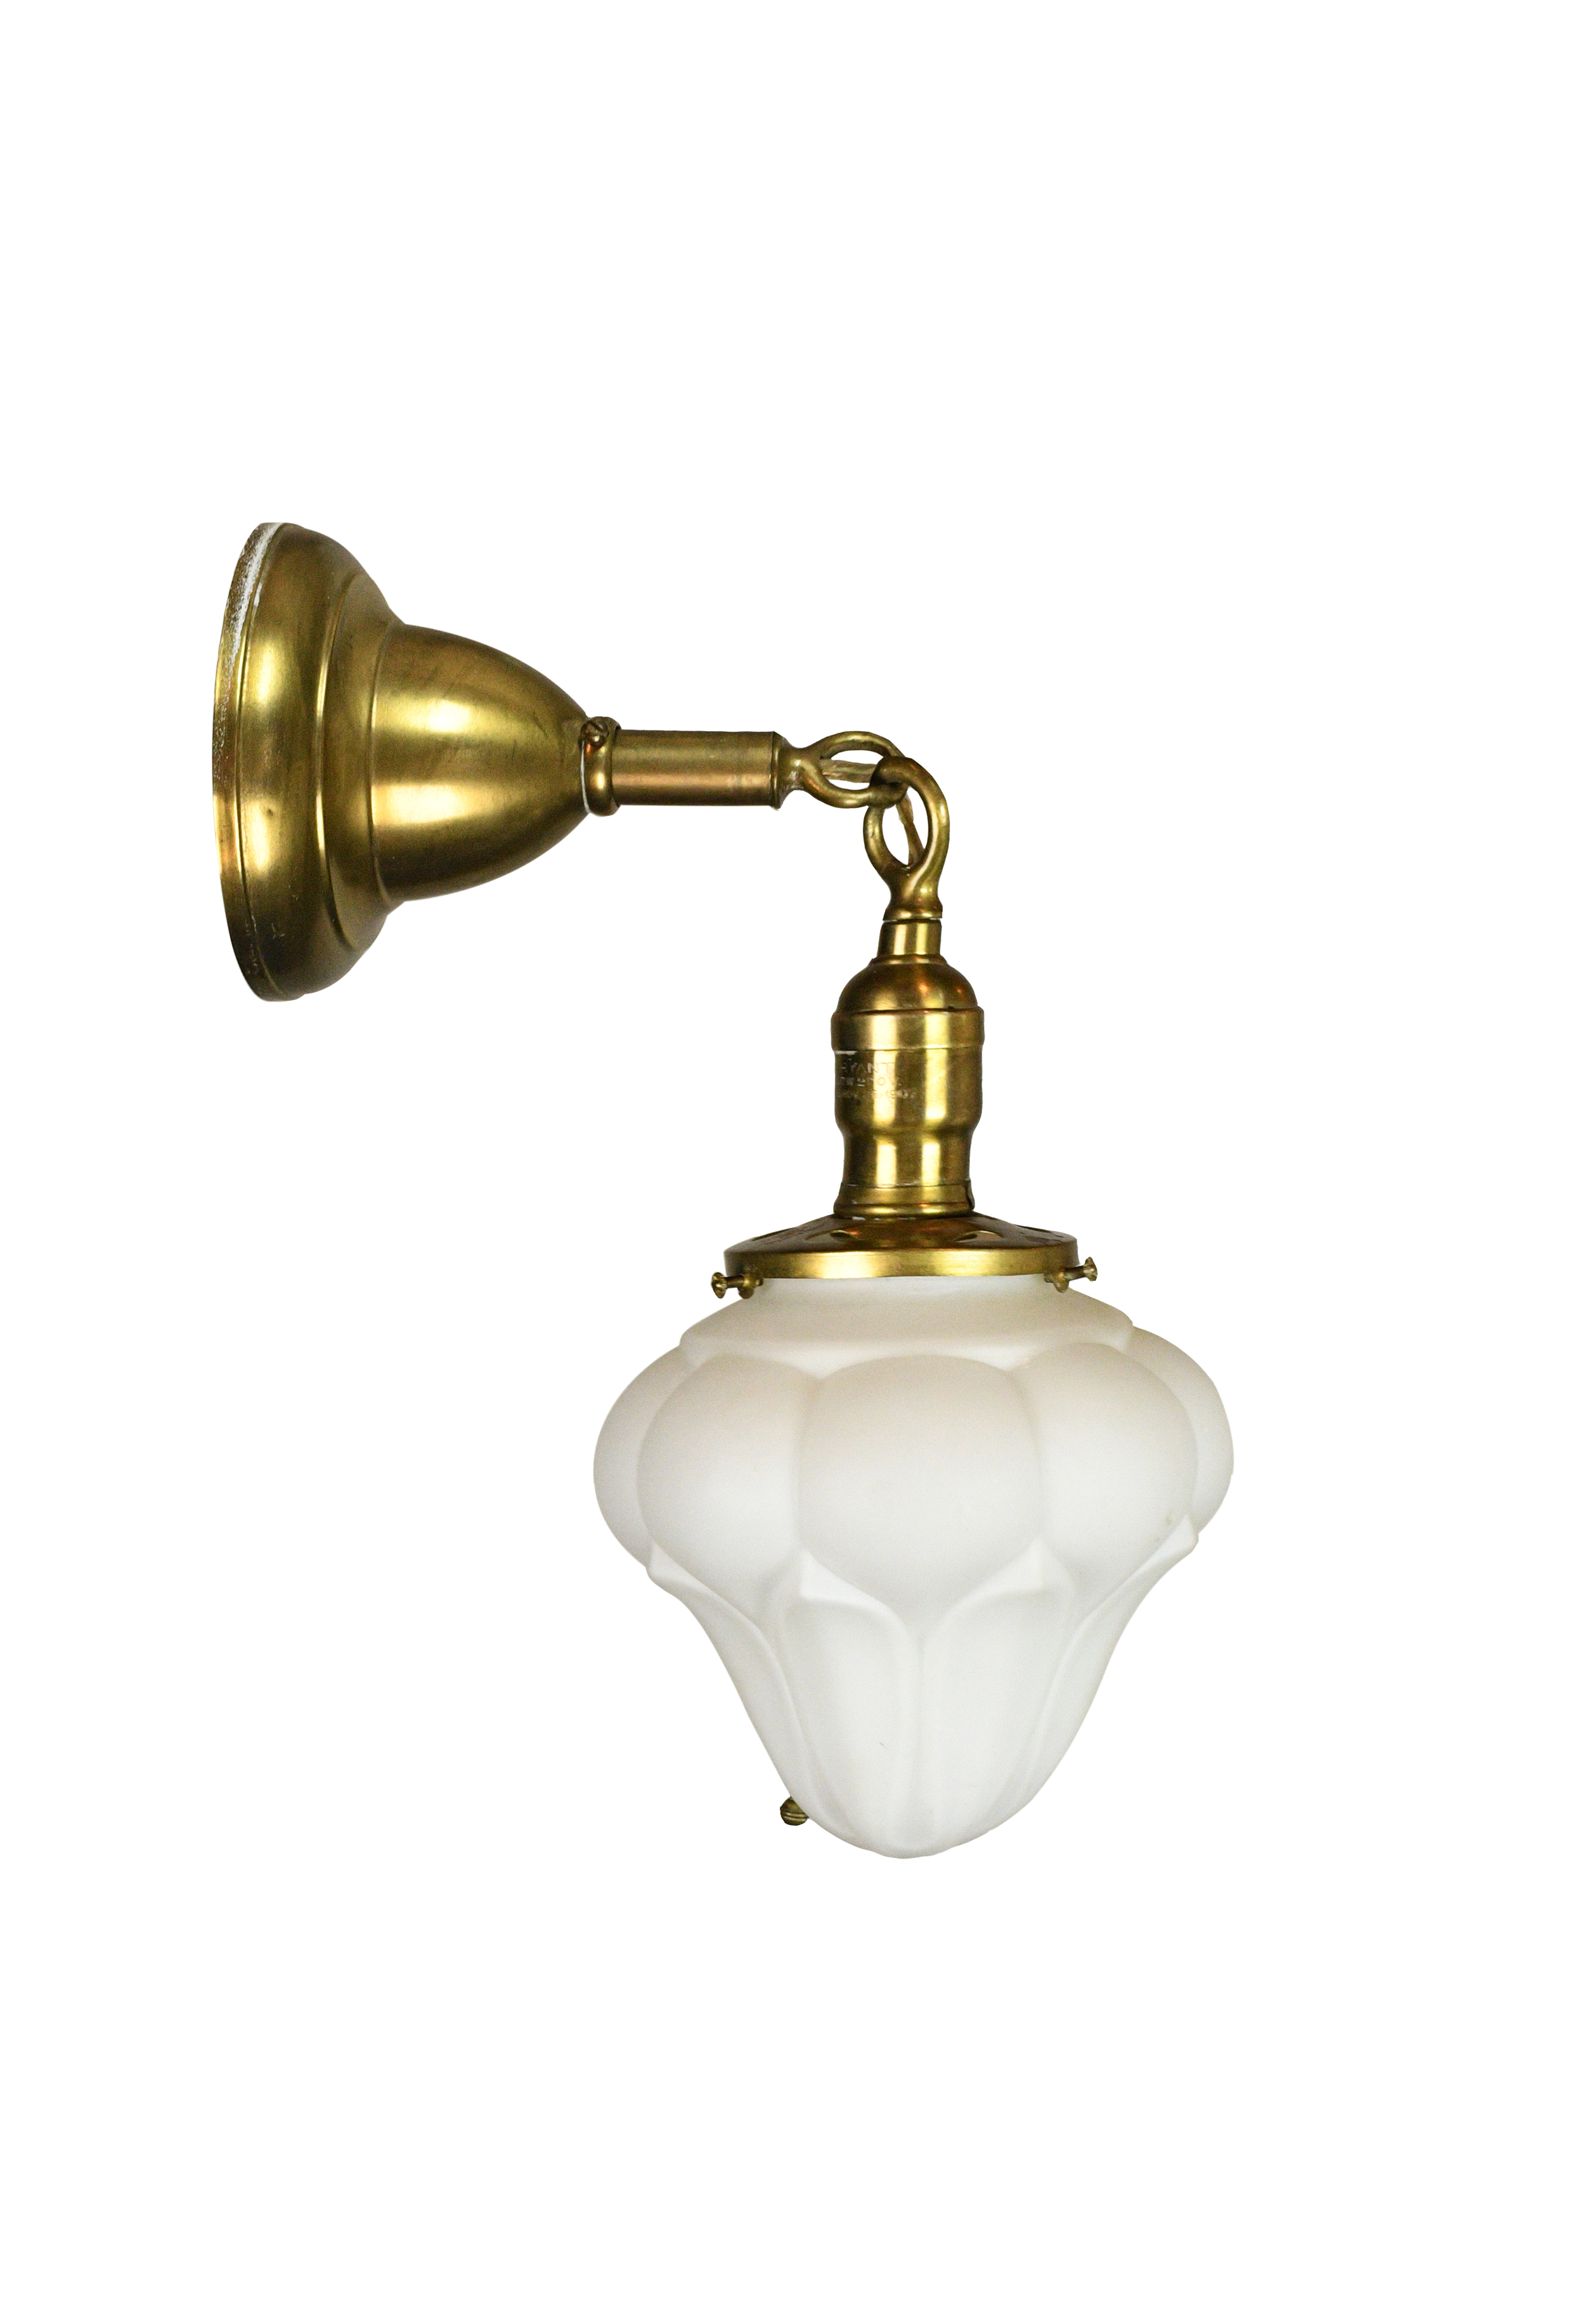 47887-CLOSED-TULIP-SHADE-PENDANT-SCONCE-OR-SCONCE-7.jpg